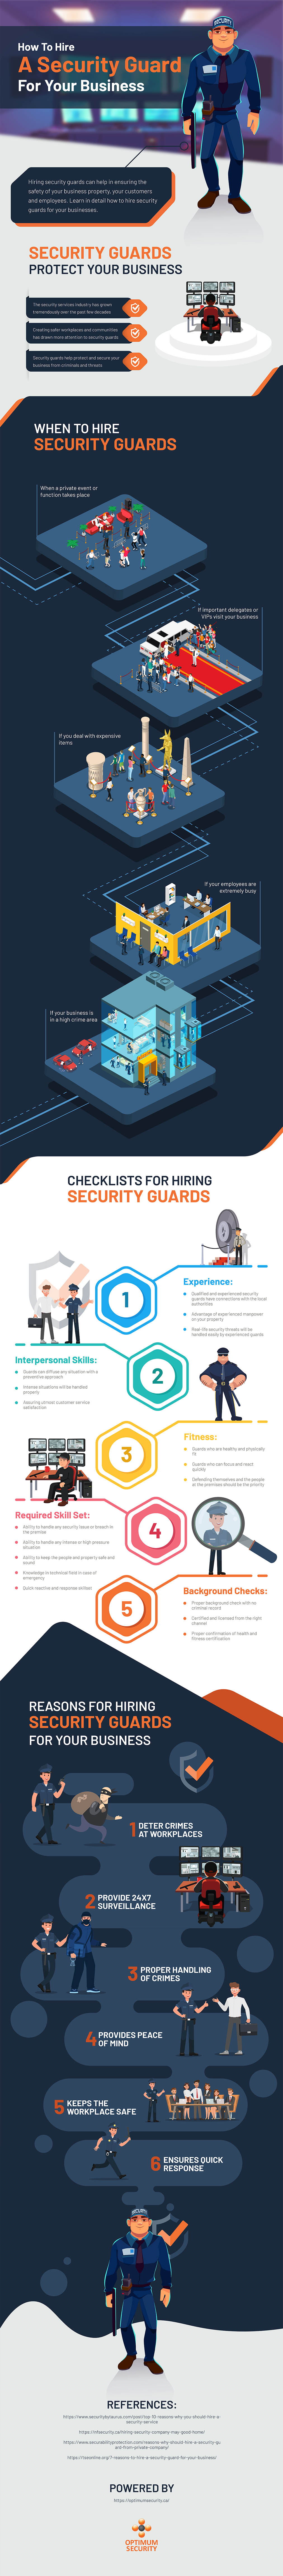 How to Hire a Security Guard